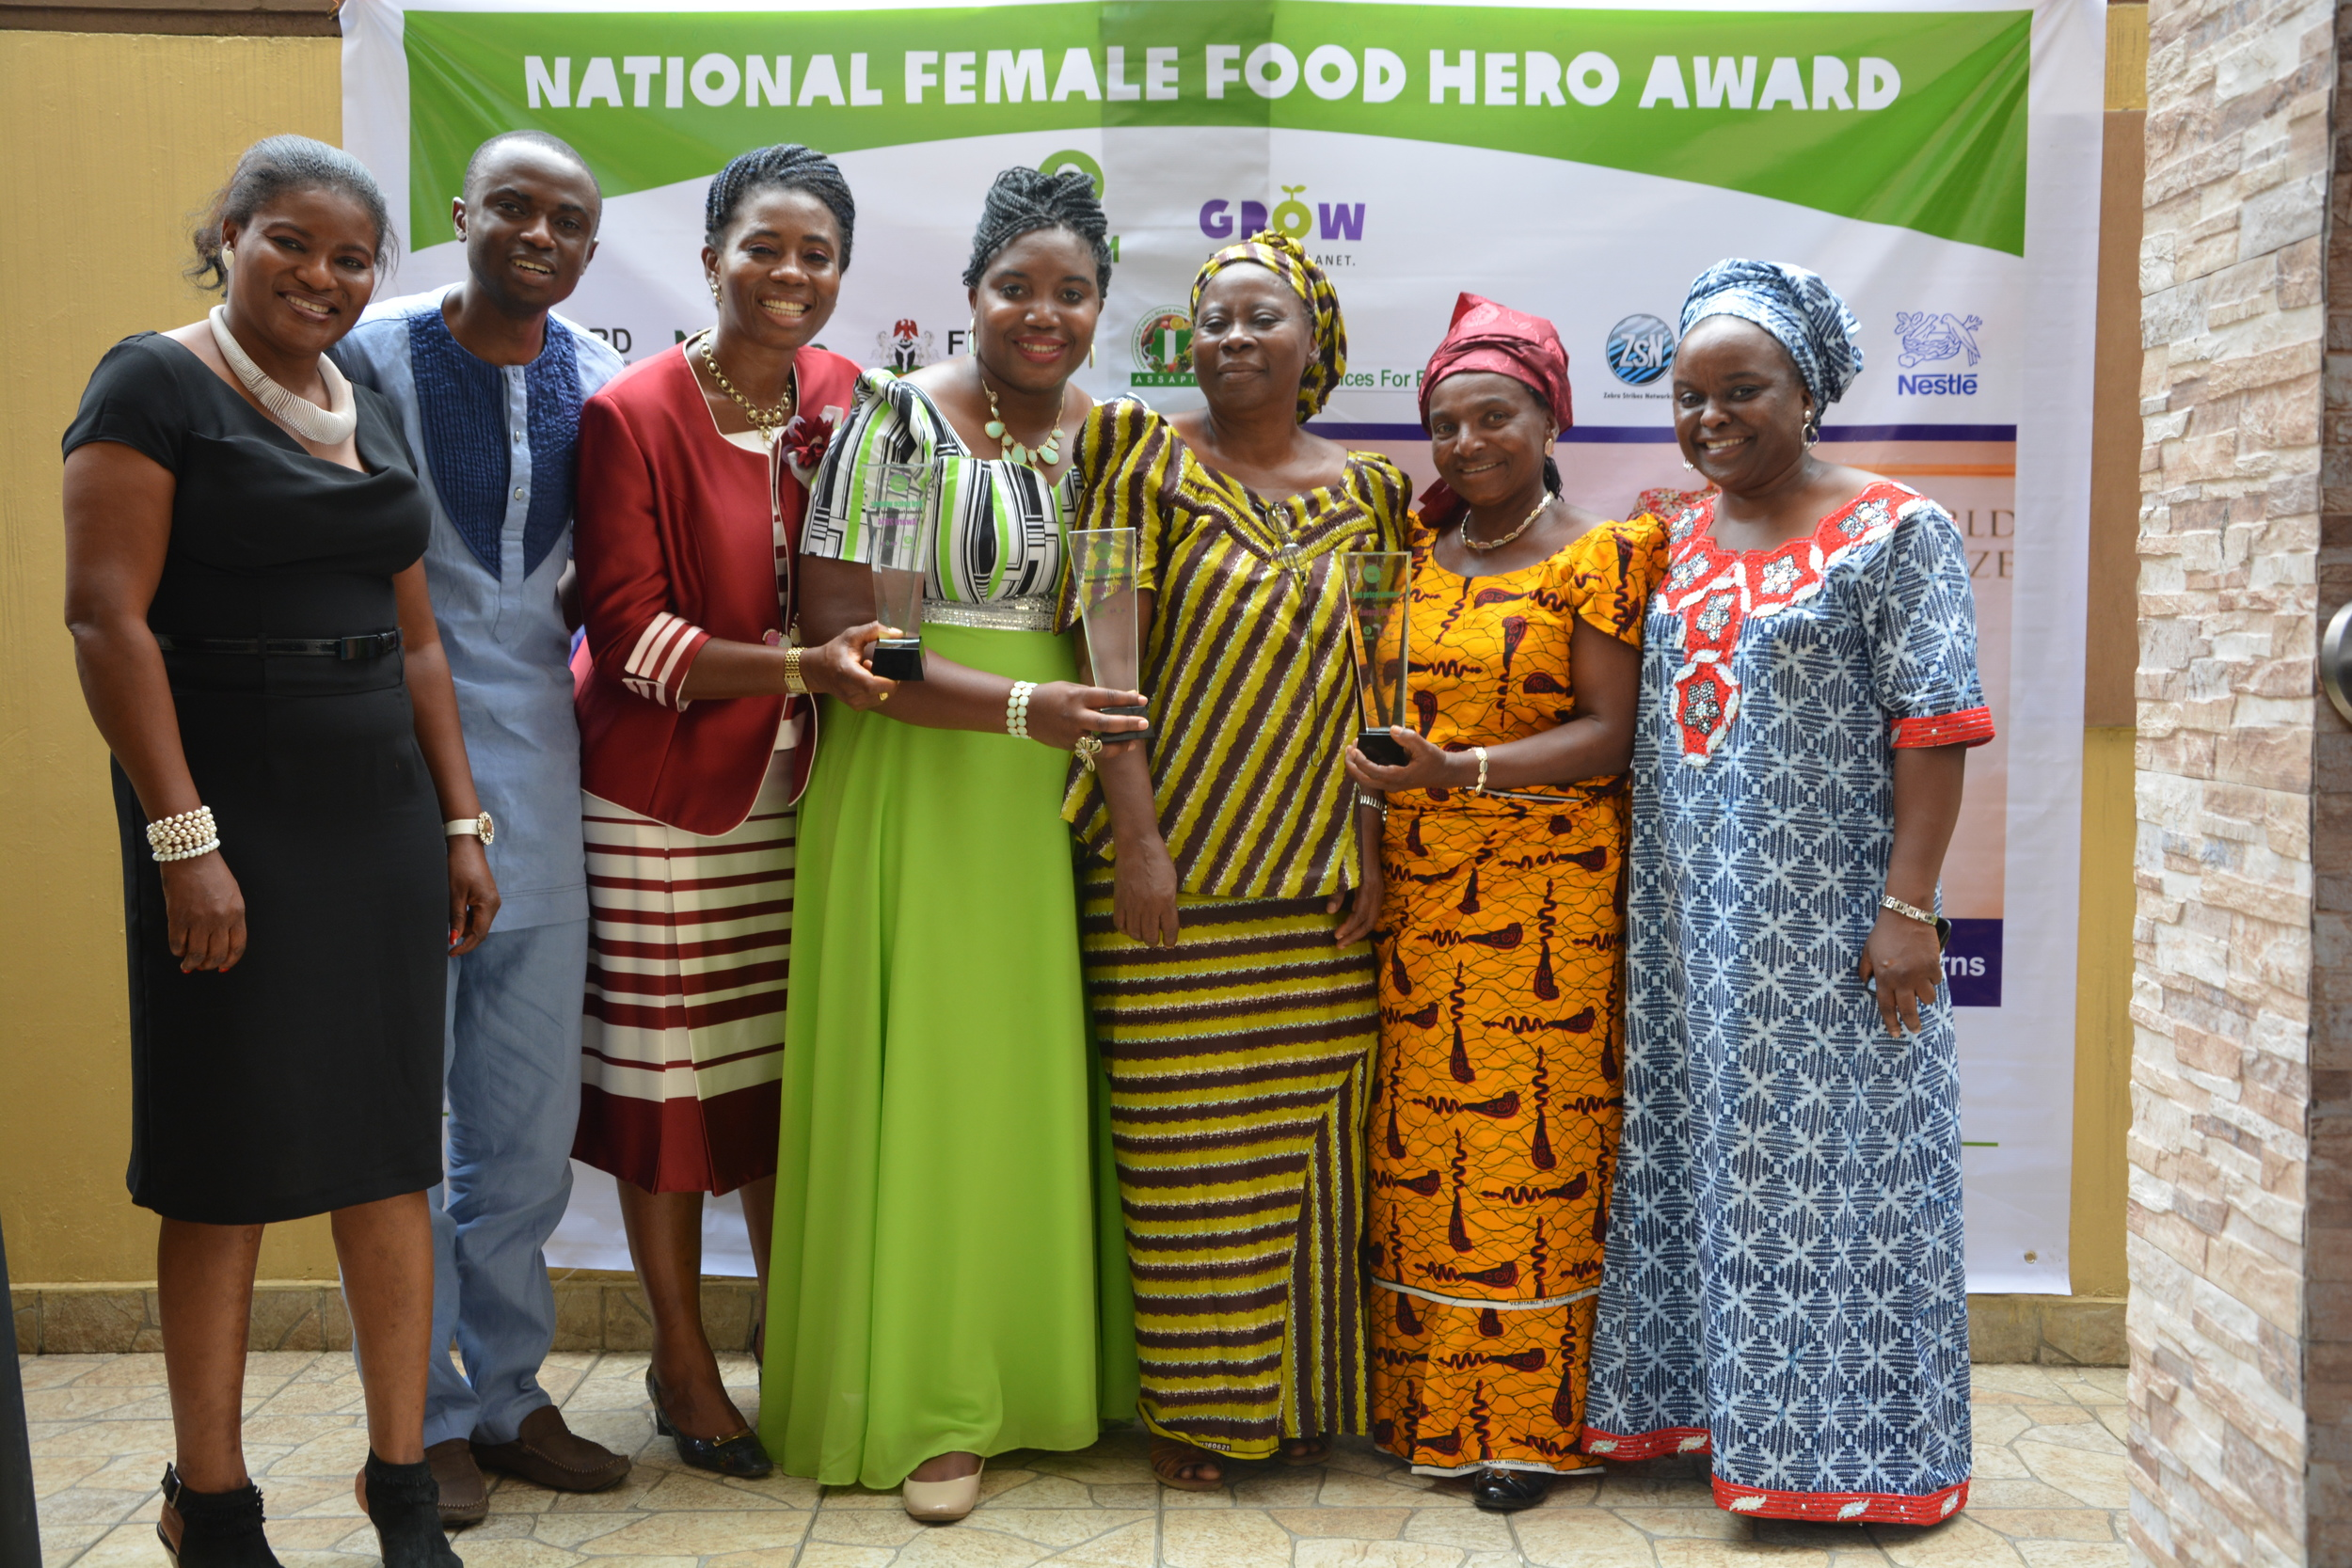 The 3 finalists and Oxfam staff.